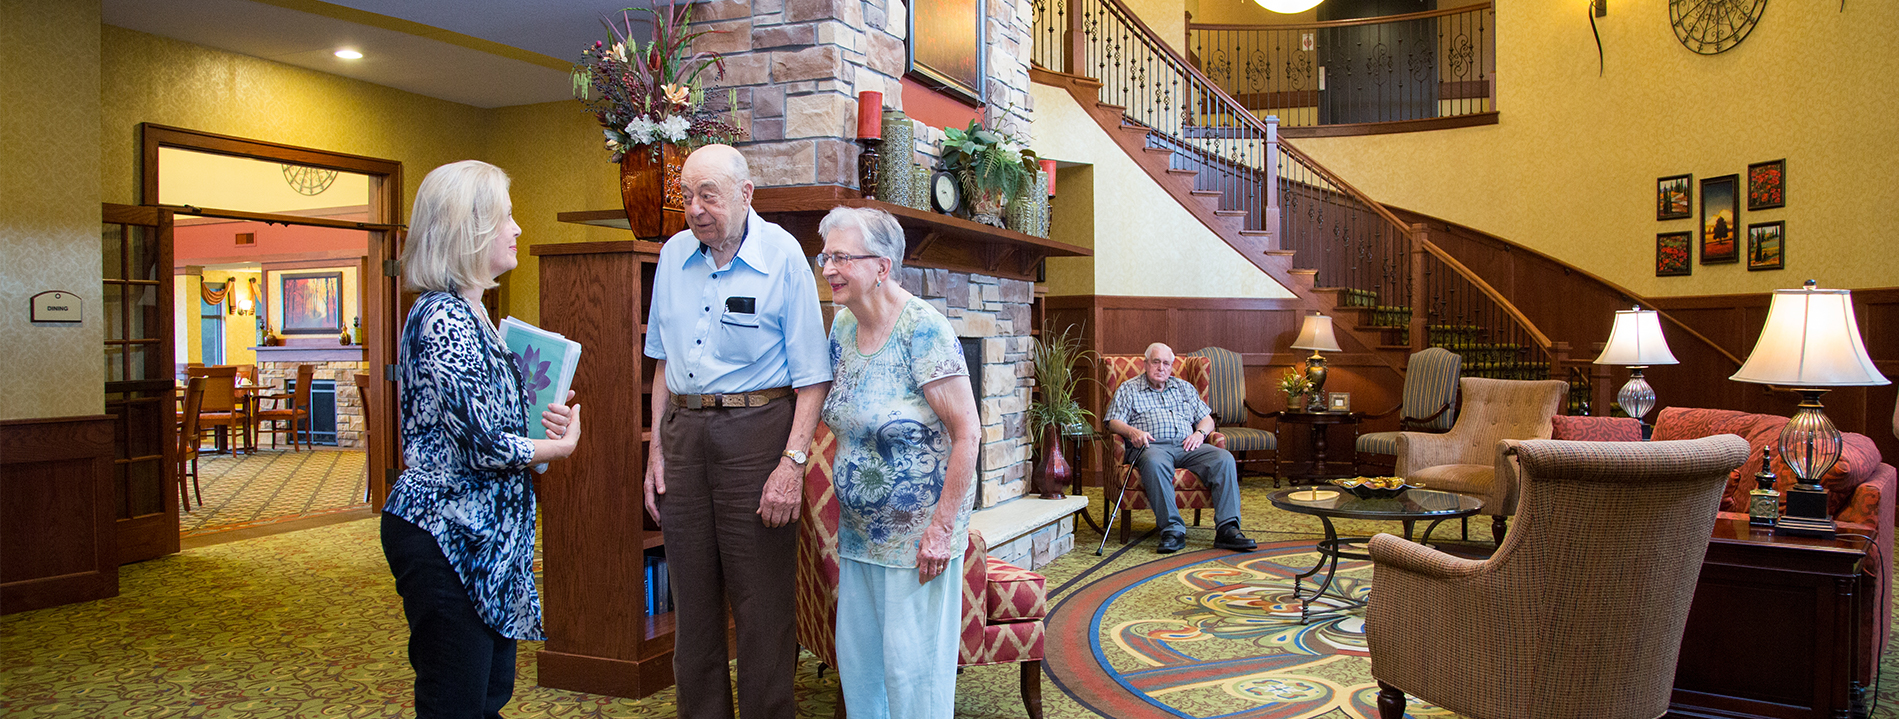 Lilydale Senior Living Independent Assisted Memory Care